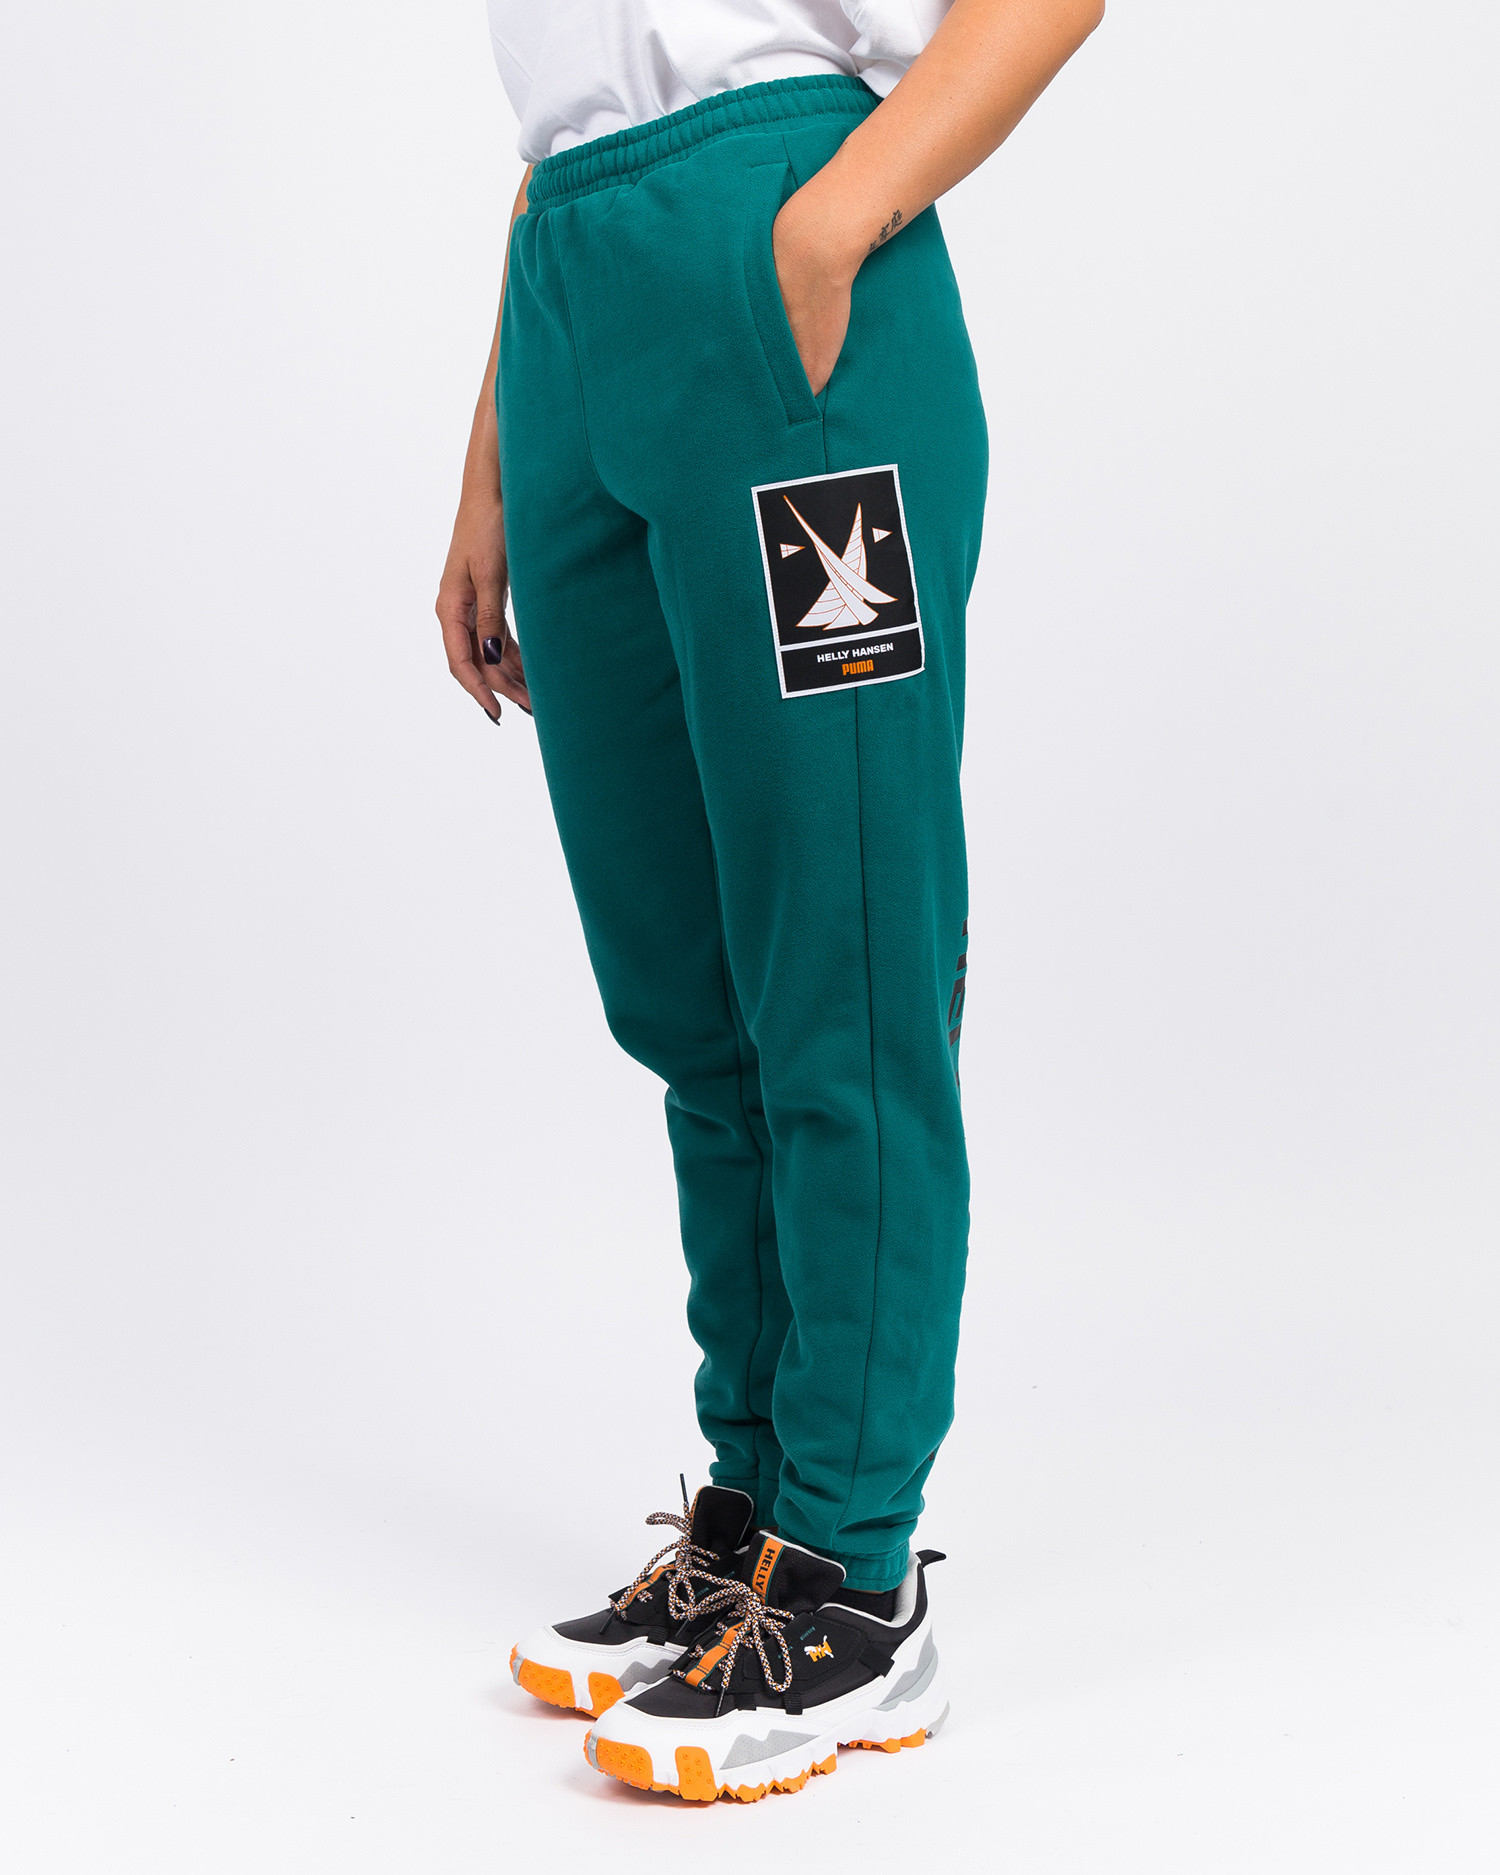 Puma X Helly Hansen Fleece Pant/Teal Green